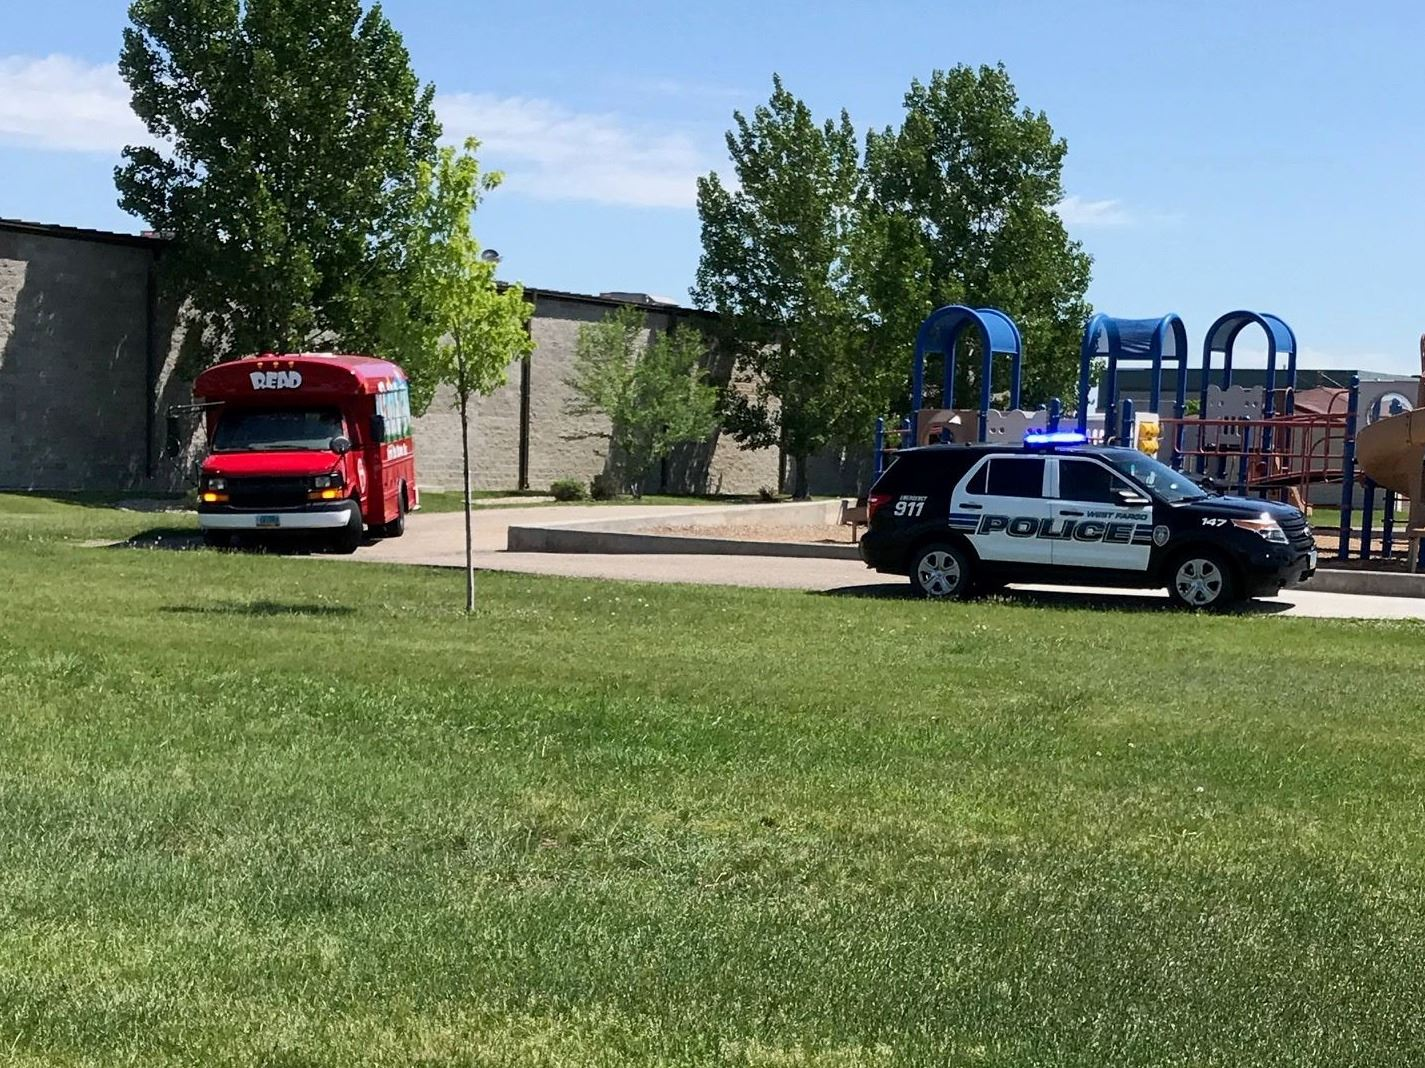 The West Fargo Police Department provided The Little Red Reading Bus a special escort.